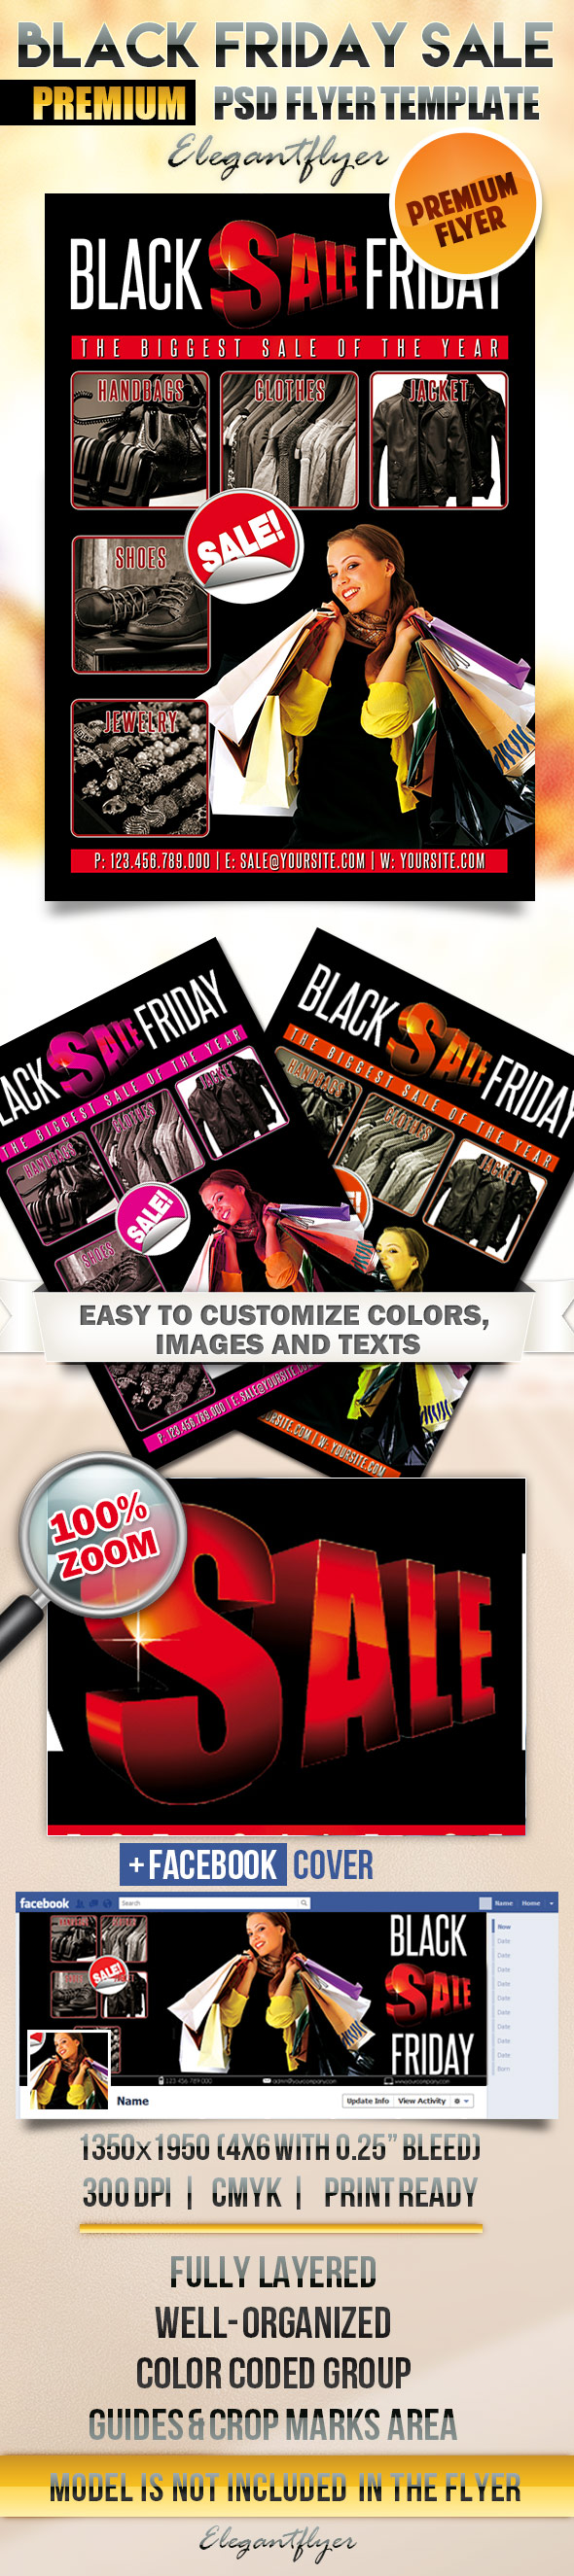 psd flyer templates images black friday flyer black friday s flyer template